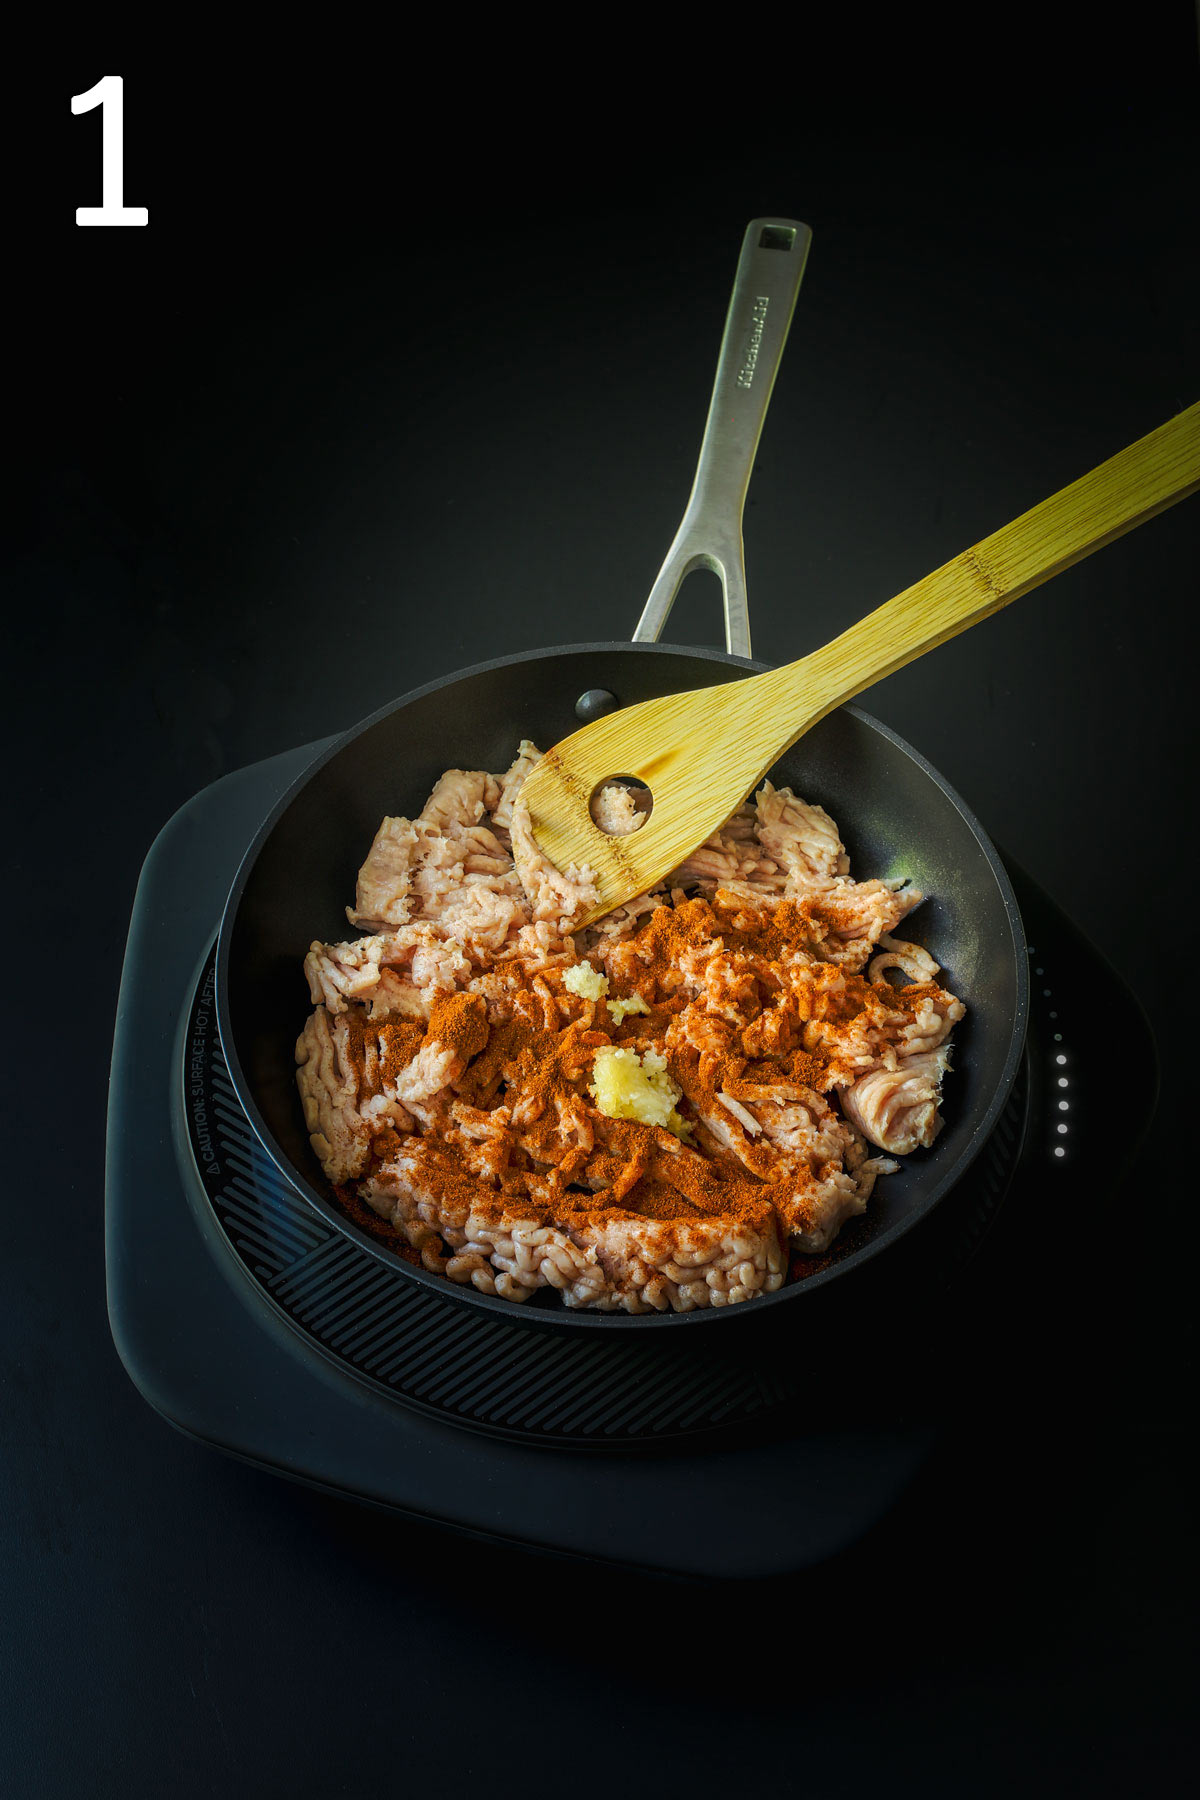 cooking turkey and spices in skillet.